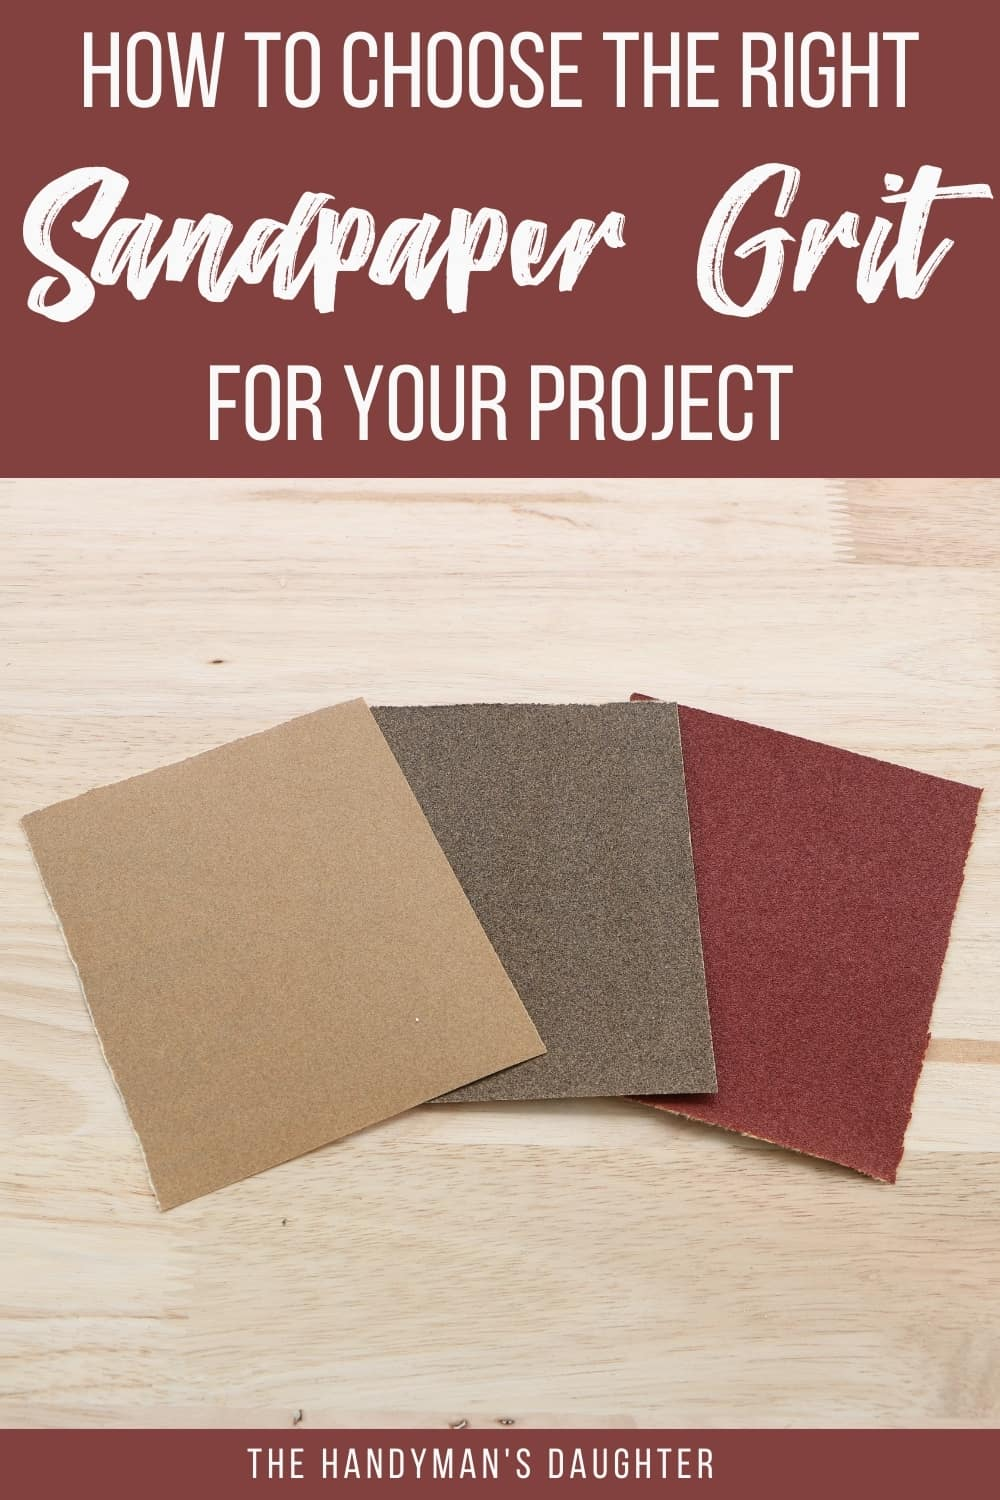 How to choose the right sandpaper grits for your project